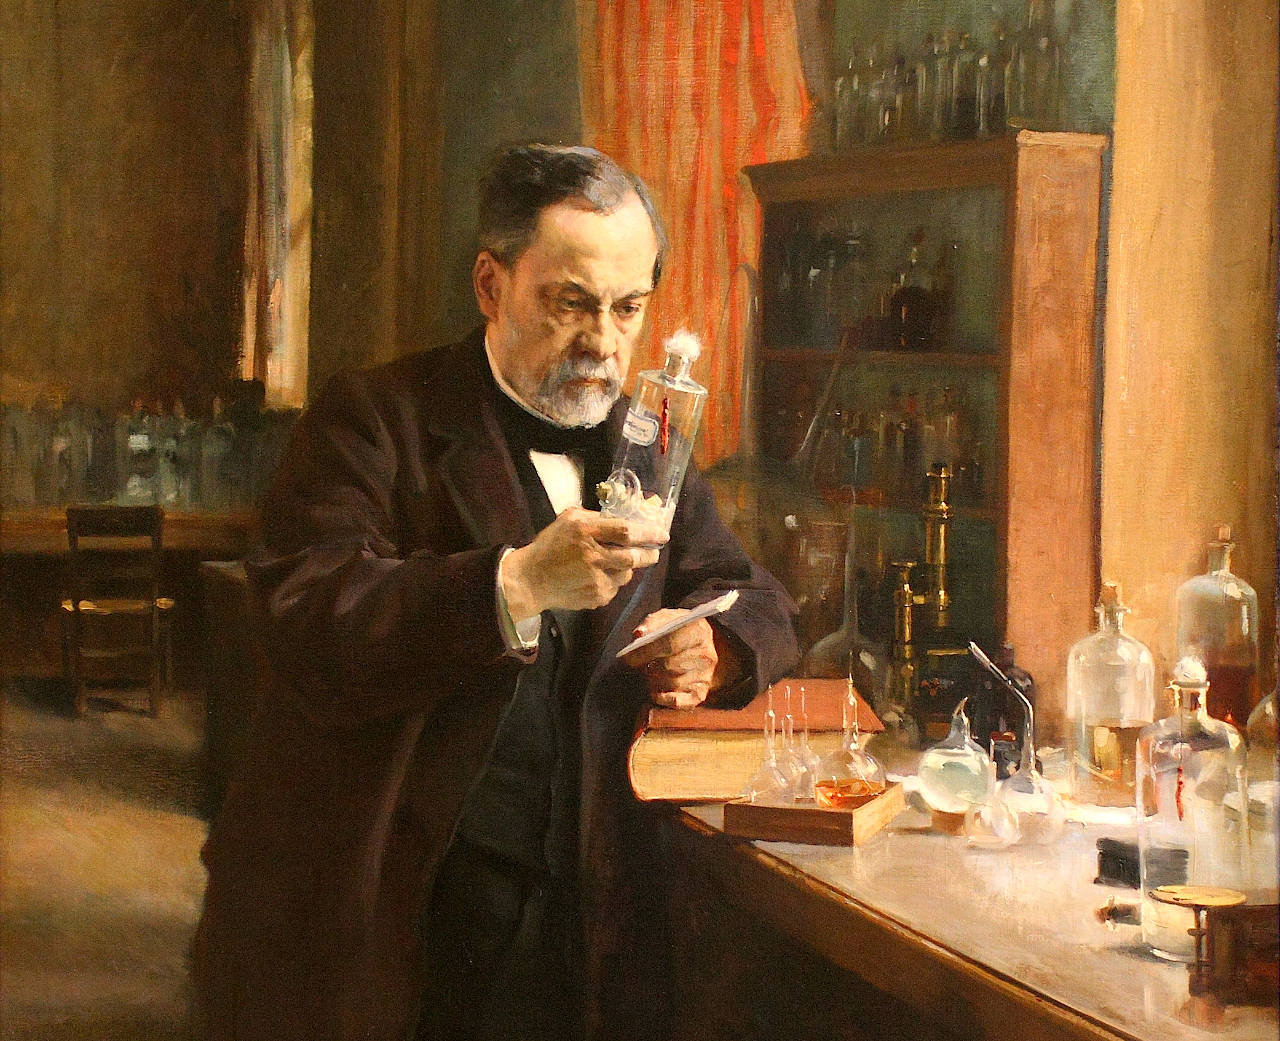 Louis Pasteur in his laboratory; leaning on the work table which has chemicals and apparatus